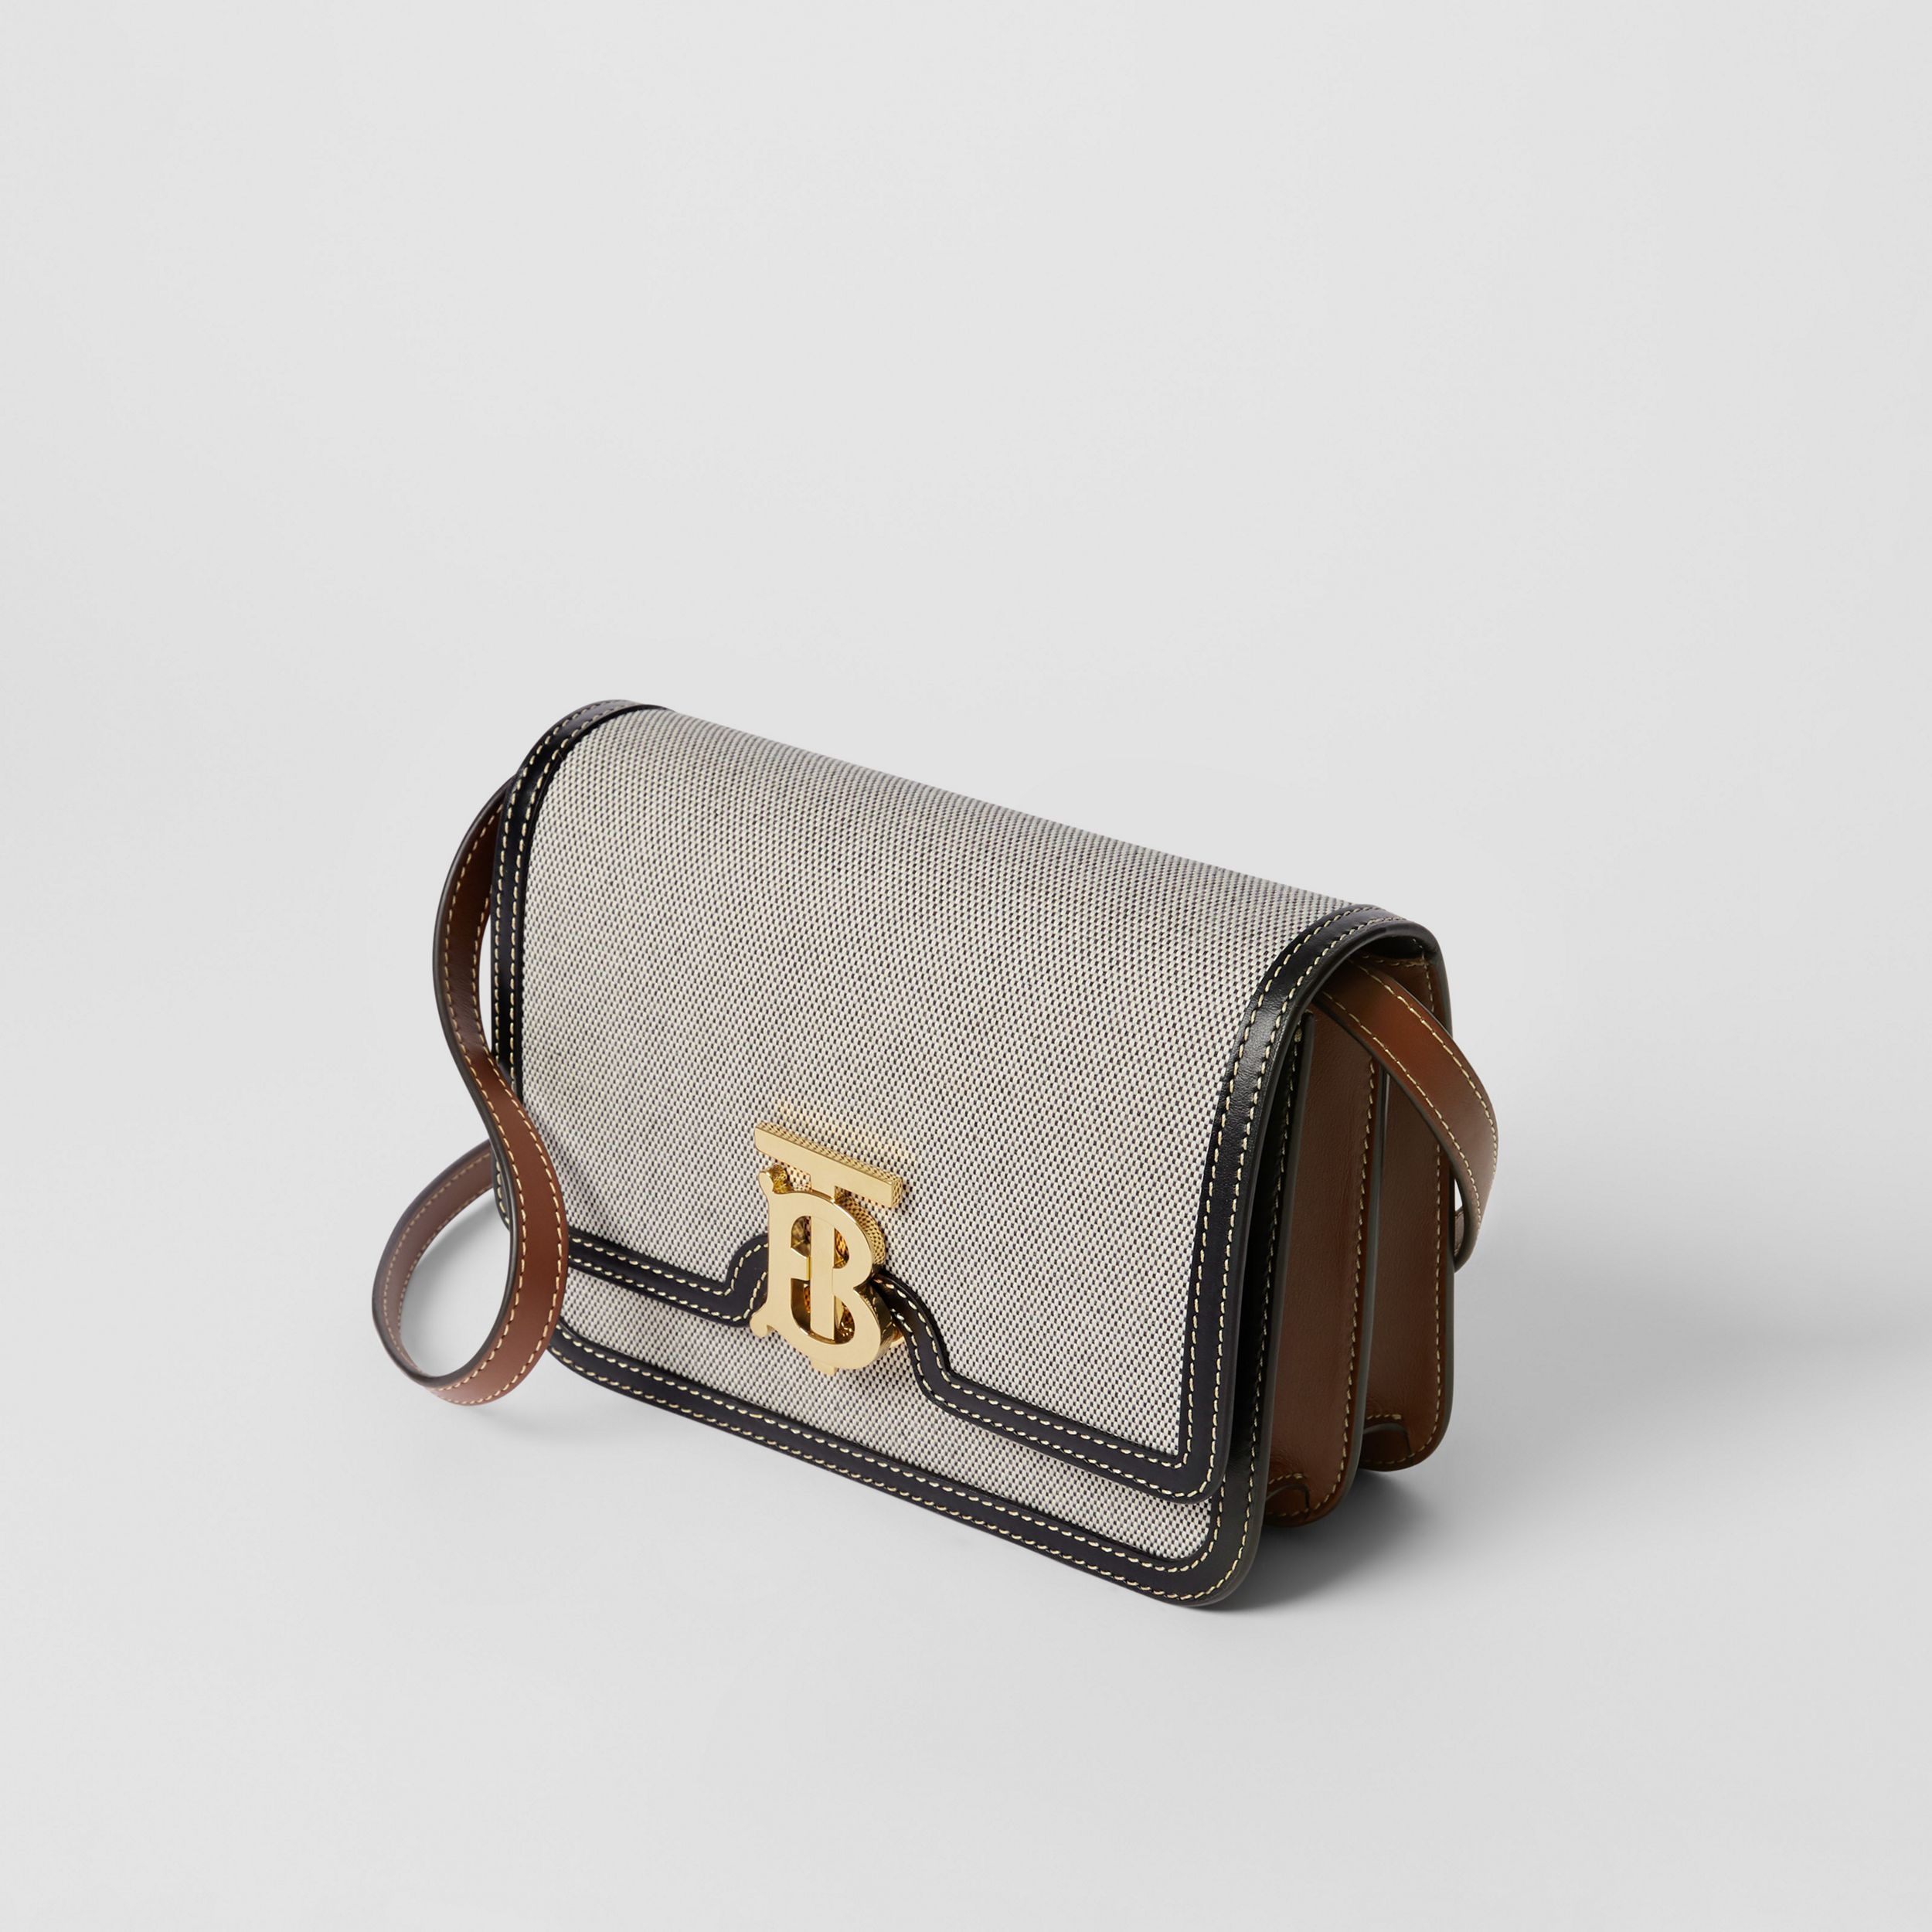 Small Tri-tone Canvas and Leather TB Bag in Black/tan - Women | Burberry United Kingdom - 4